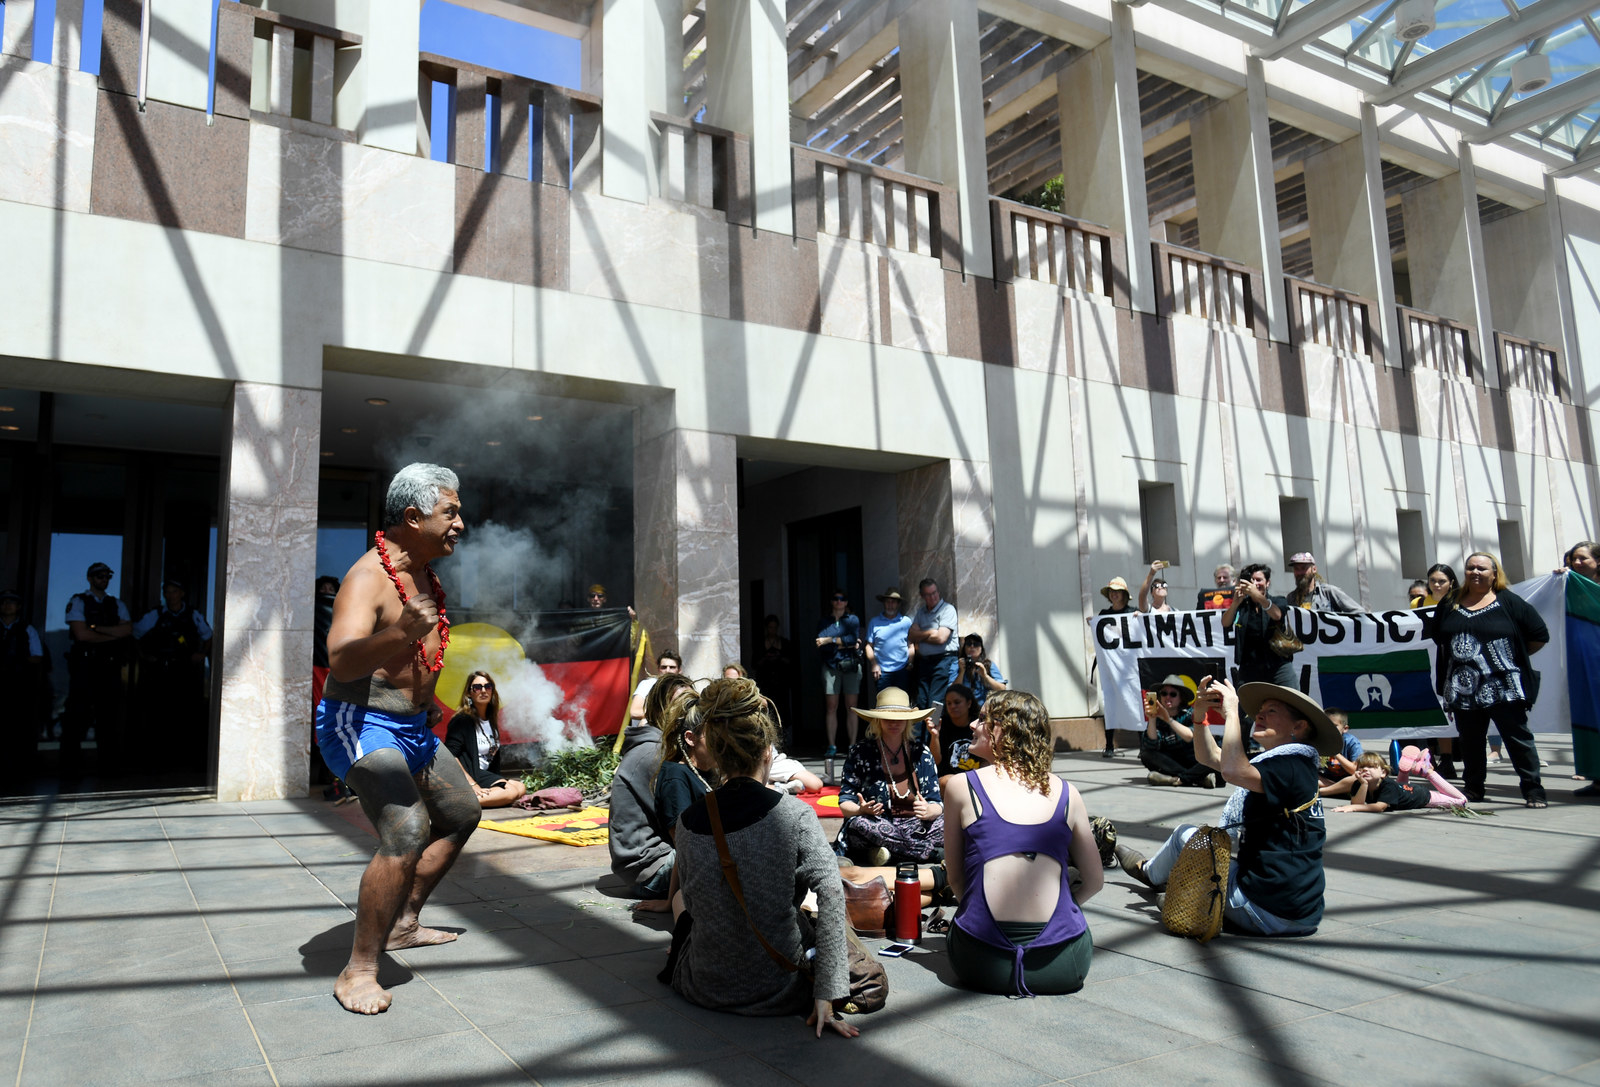 Australia -  CANBERRA, AUSTRALIA - FEBRUARY 13: Aboriginal and Torres Strait Islander people, alongside non-Indigenous allies, occupy the foyer and front entry of Parliament House on February 13, 2019 in Canberra, Australia. The group are calling for government action on Climate Change and water protection in Australia.